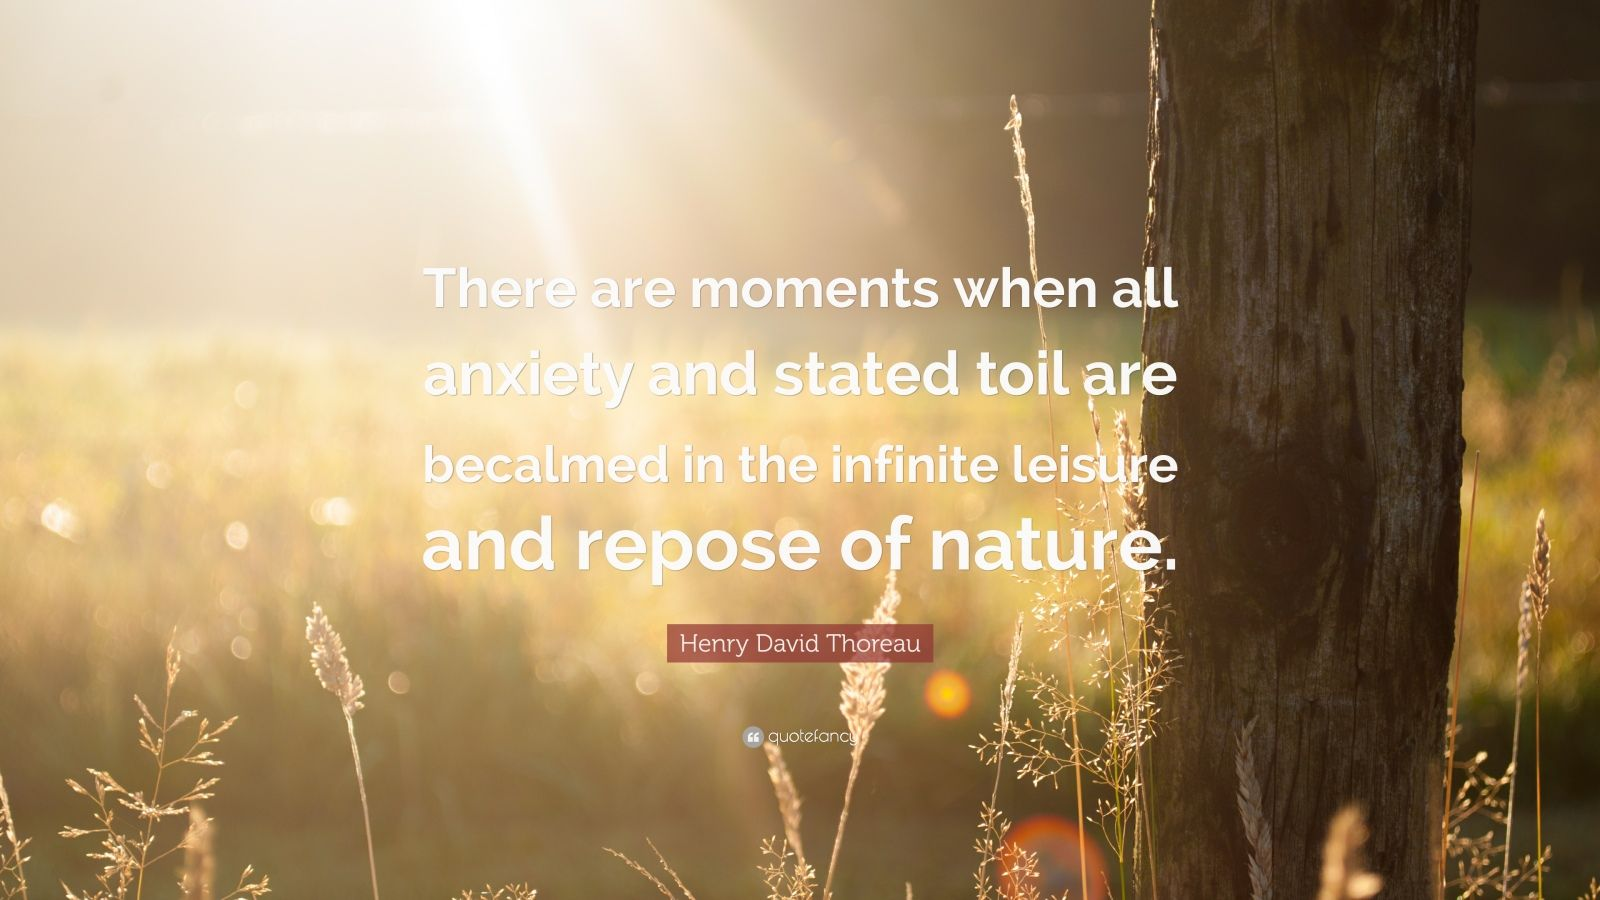 """Henry David Thoreau Quote: """"There are moments when all anxiety and stated toil are becalmed in the infinite leisure and repose of nature."""""""